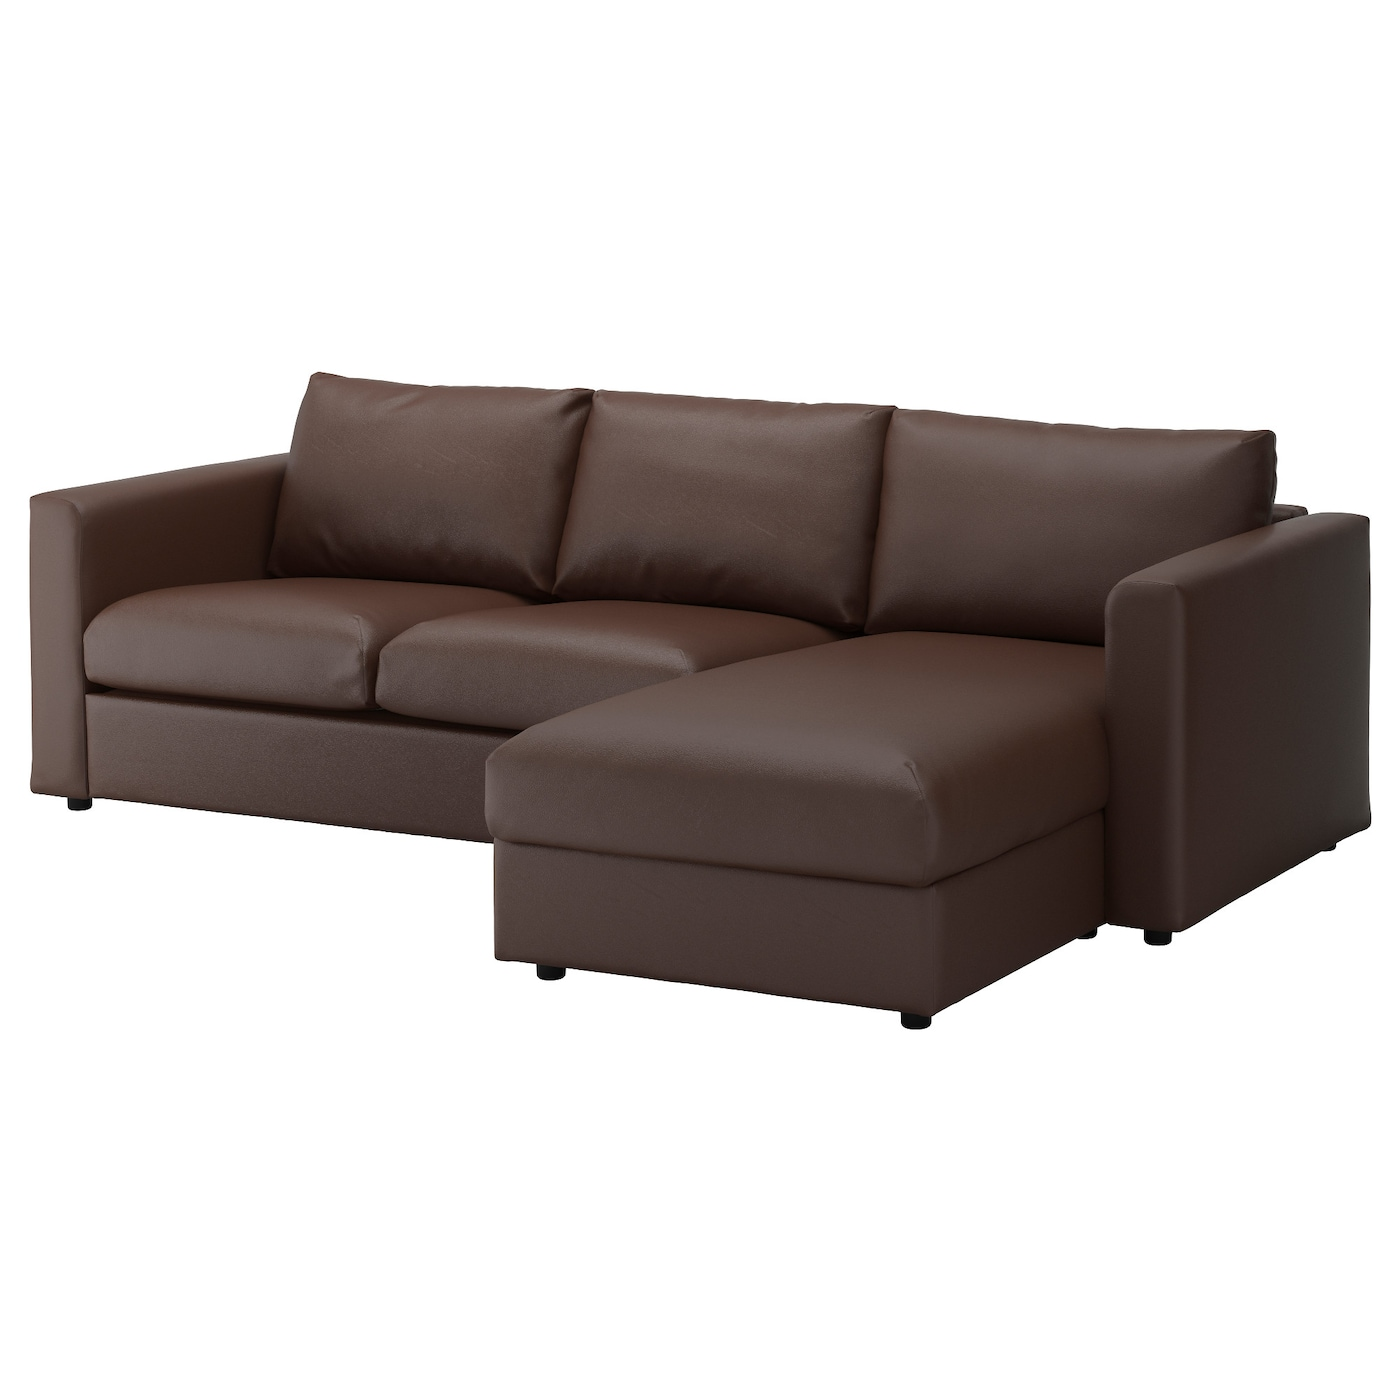 3 seater sofa ikea for Sofa landhausstil